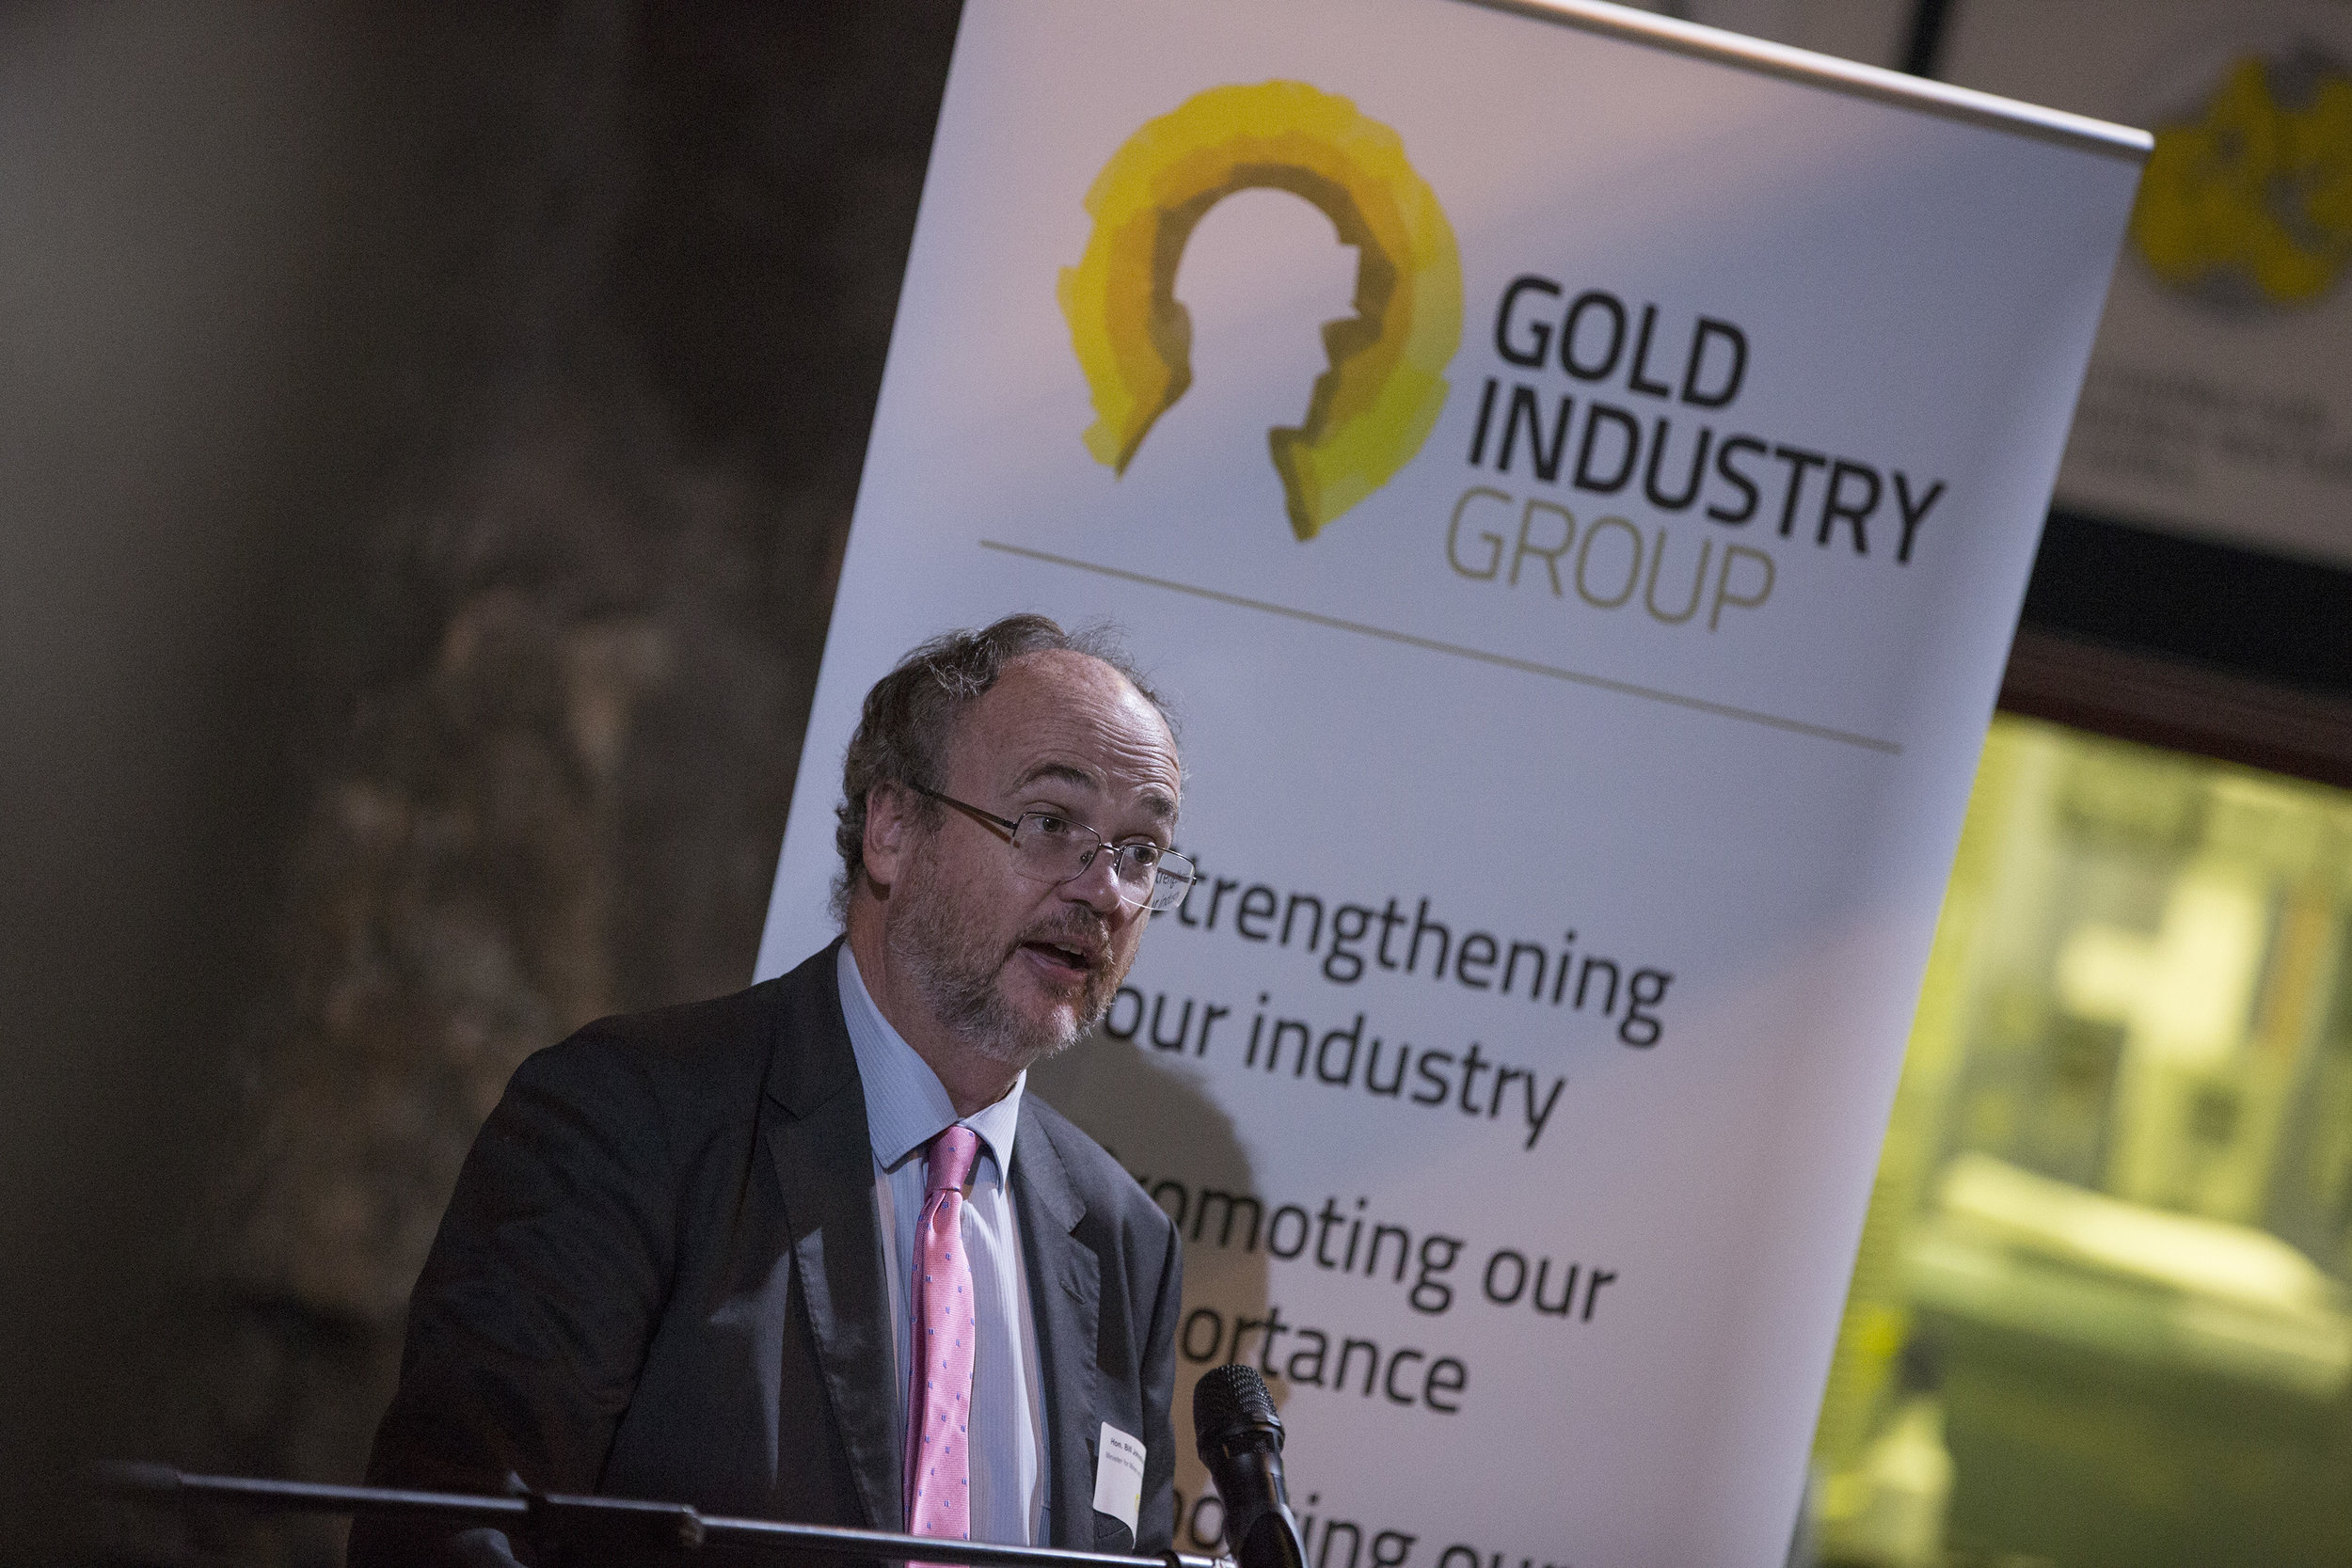 Hon. Bill Johnston MLA addressing members of the gold industry on his commitment to make Western Australia an attractive investment destination